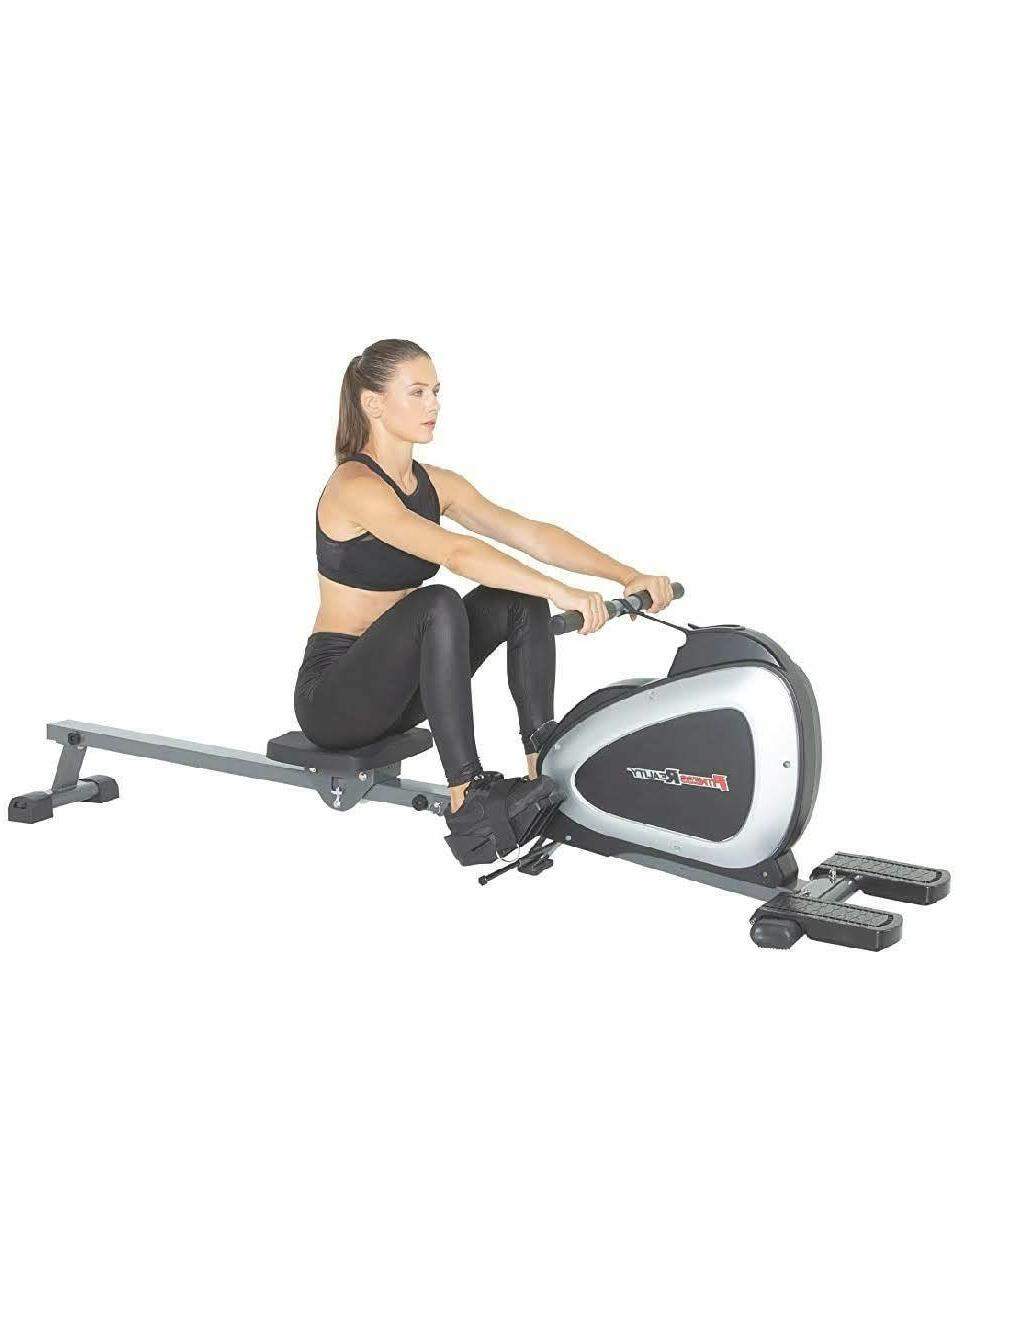 1000 plus bluetooth magnetic rower rowing machine